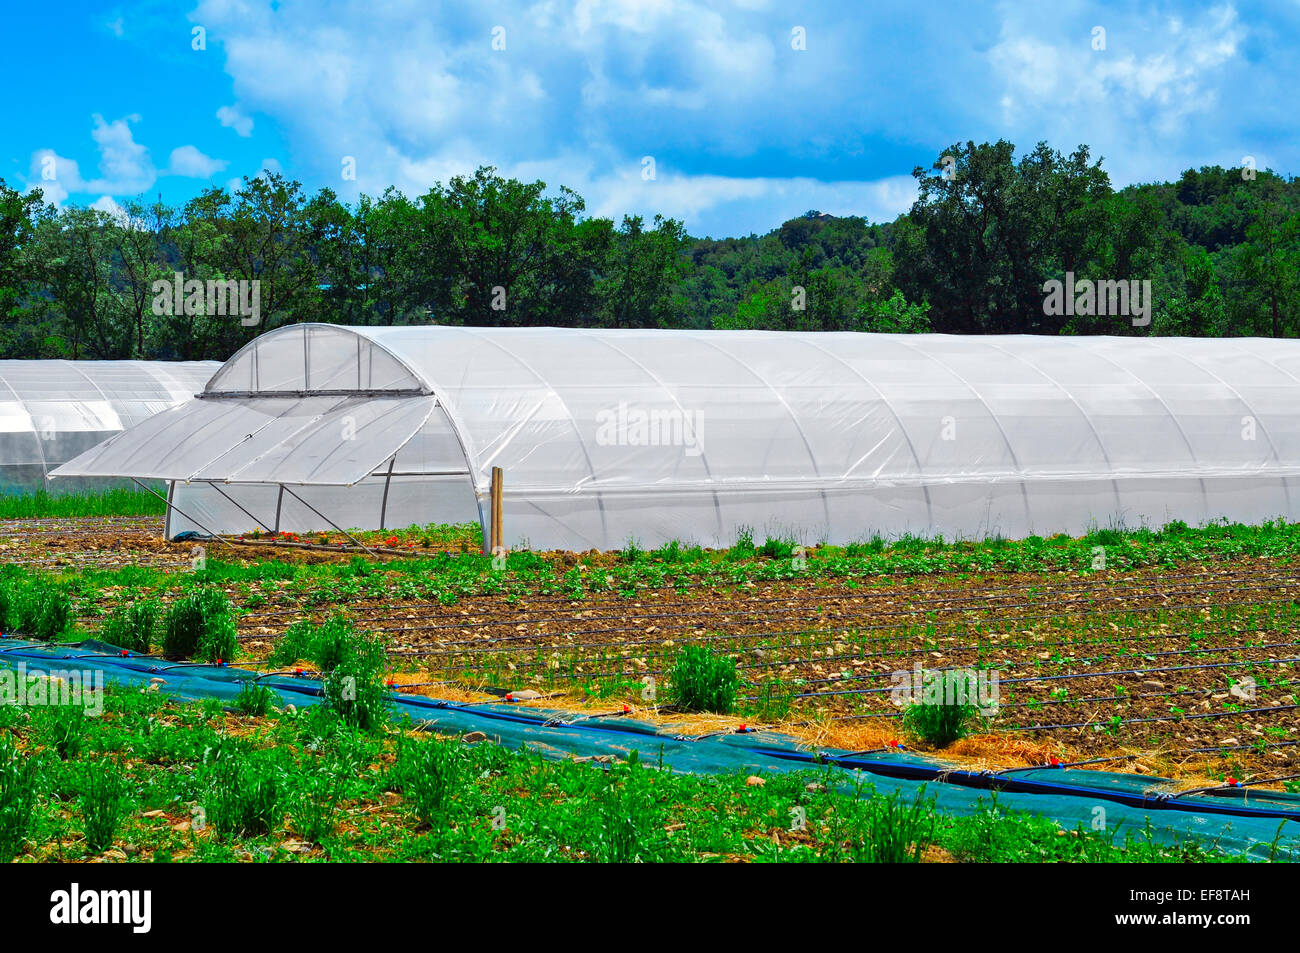 some high tunnels with different cultivars in a farm - Stock Image